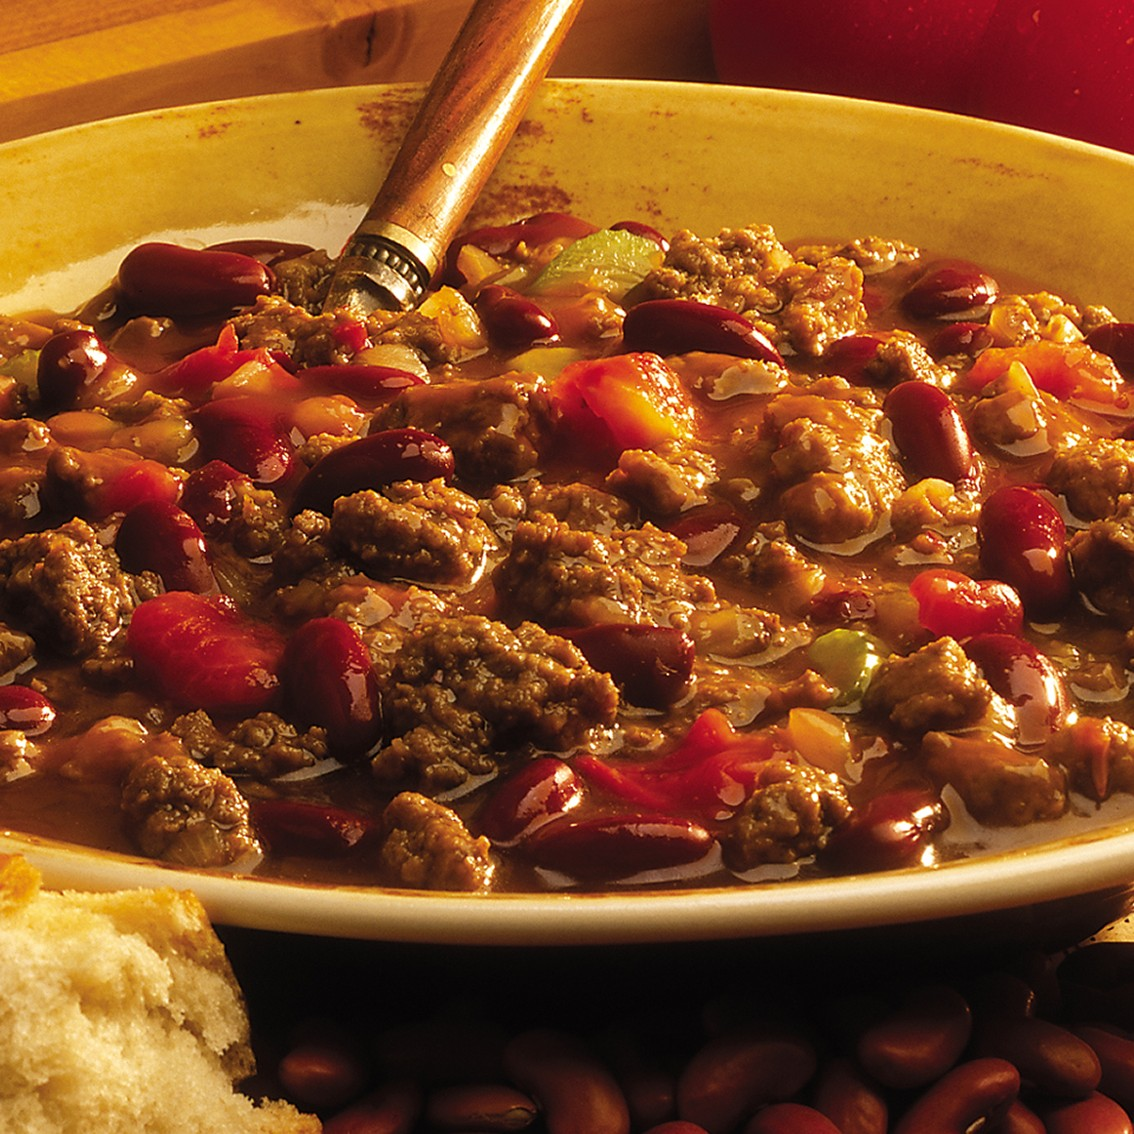 Bowl of foodservice Whitey's Frozen Chili Manufacturers Beef Chili in a restaurant setting